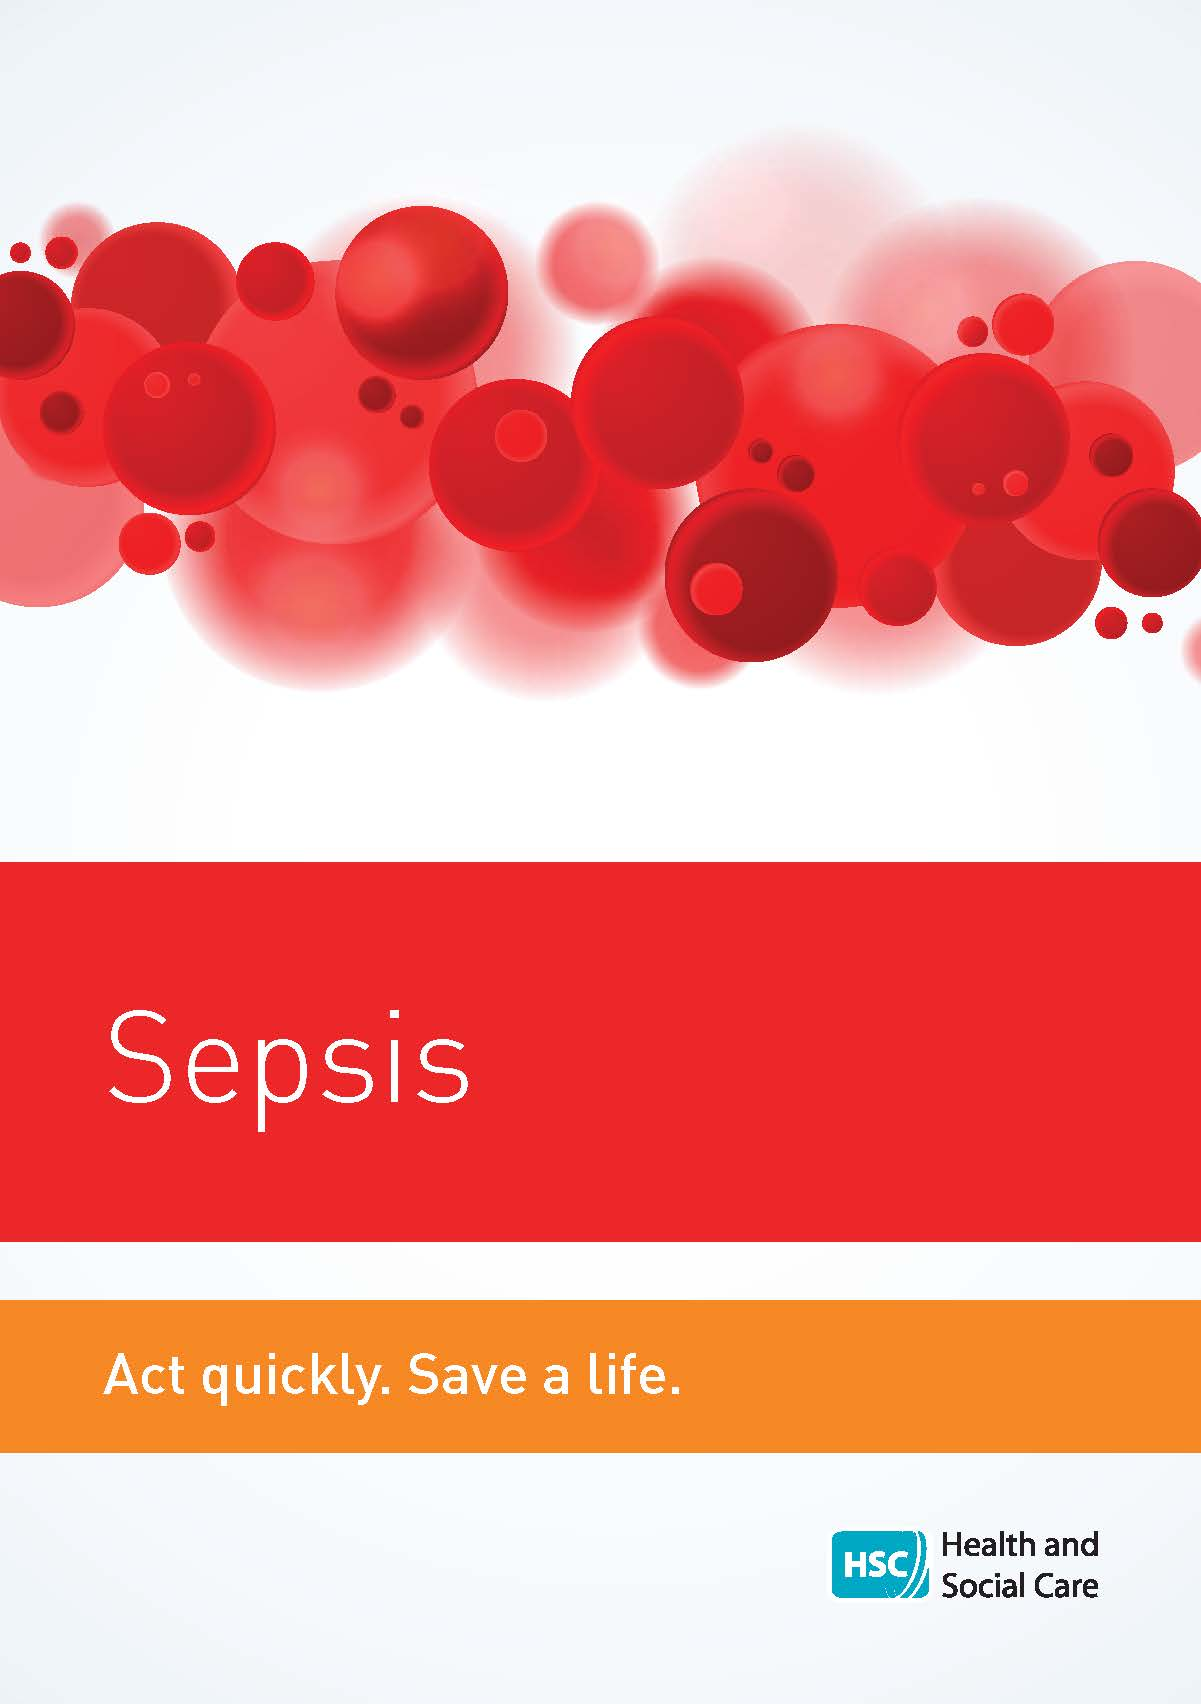 Sepsis. Act quickly. Save a life.